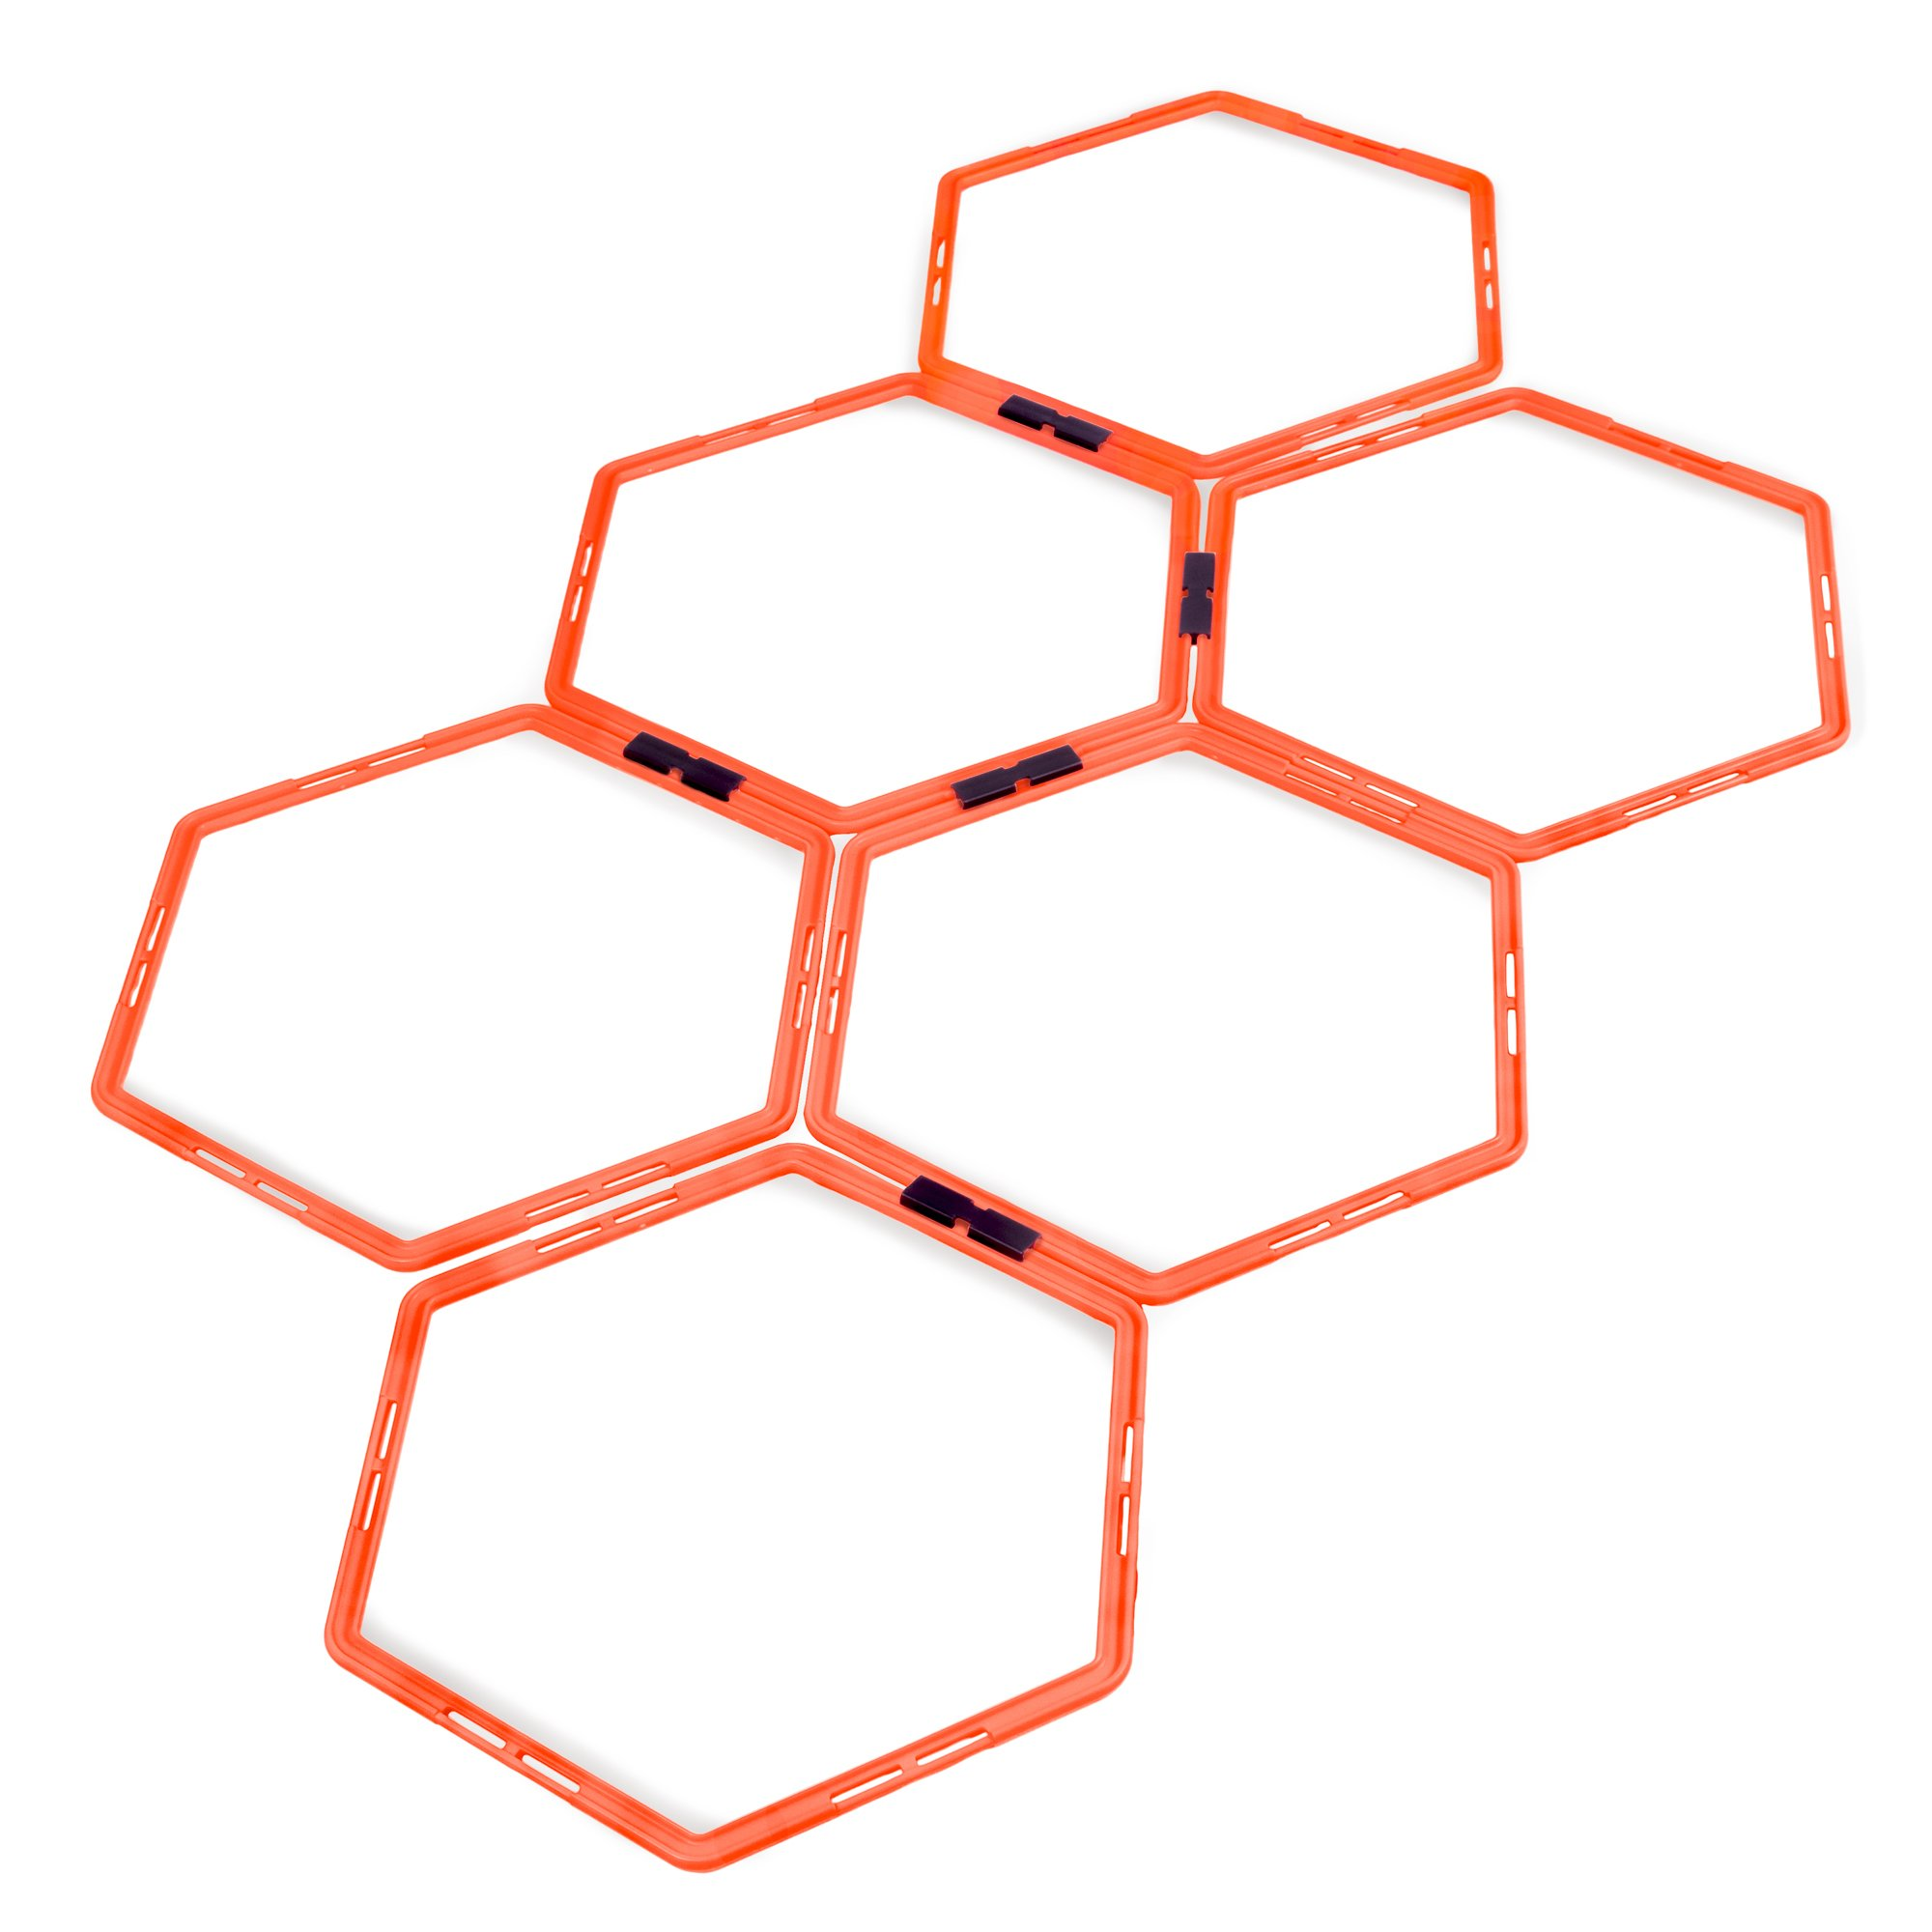 Crown Sporting Goods Hexagonal Ladder Set, Fluorescent Orange - Plyometric Hex Speed Rings for Agility Footwork Training & Vertical Jump Workouts, Features 6-Rungs of Hexes by Crown Sporting Goods